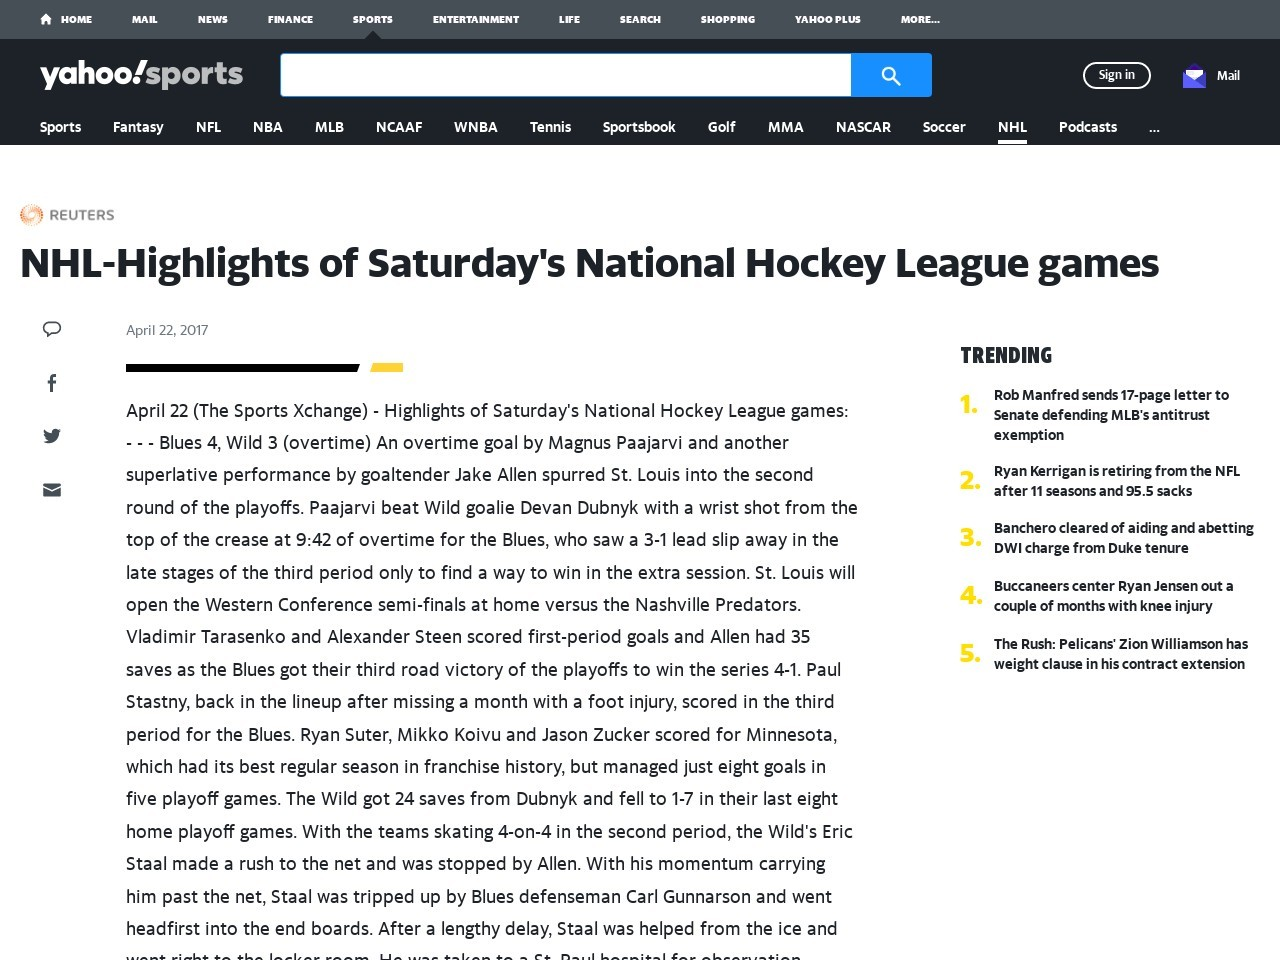 NHL-Highlights of Saturday's National Hockey League games